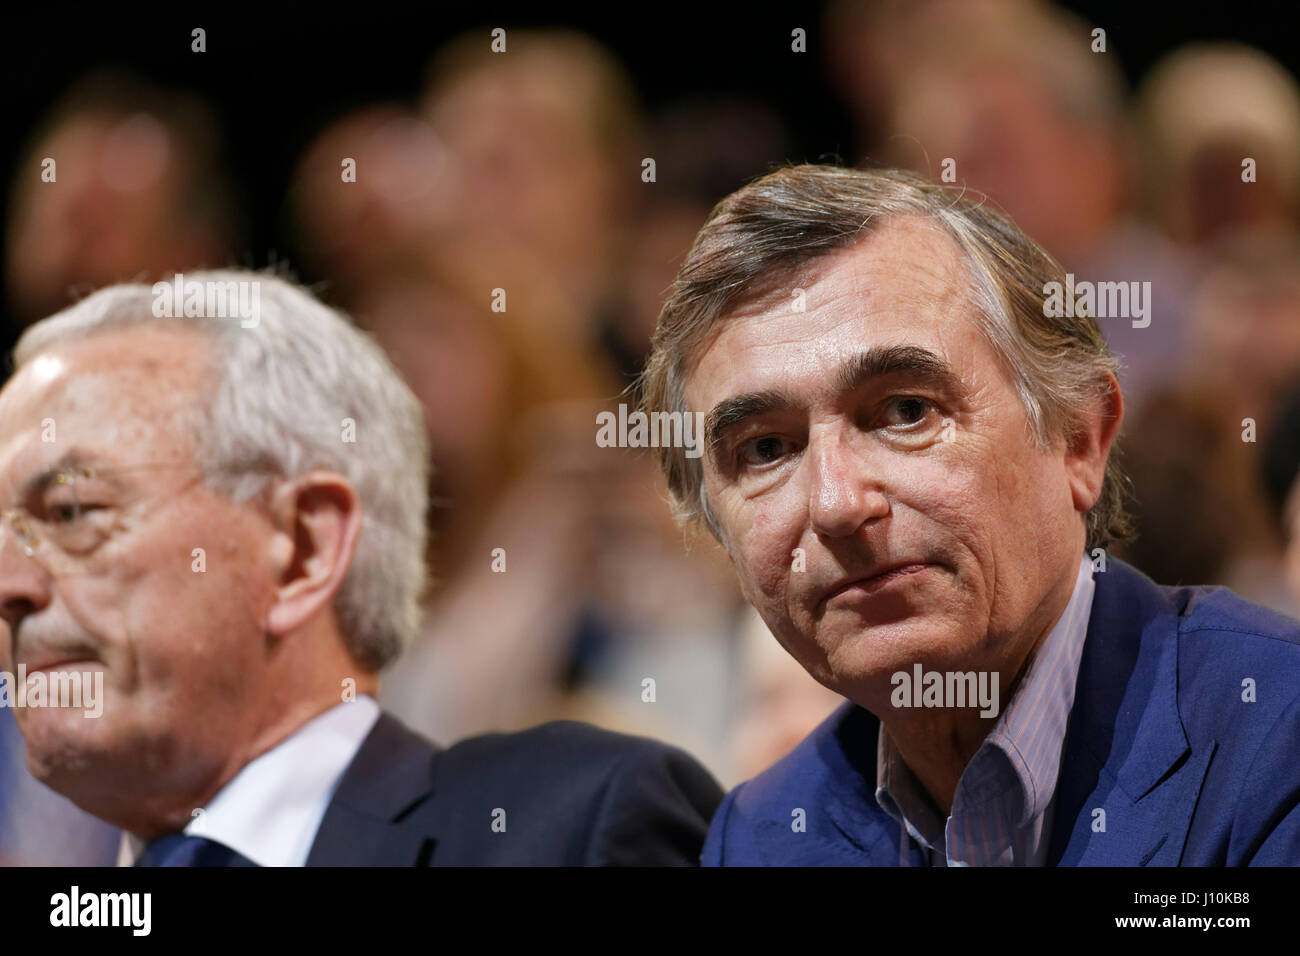 Paris, France. 17th April, 2017. Philippe Douste-Blazy attends last big meeting of Emmanuel Macron in Paris Bercy - Stock Image